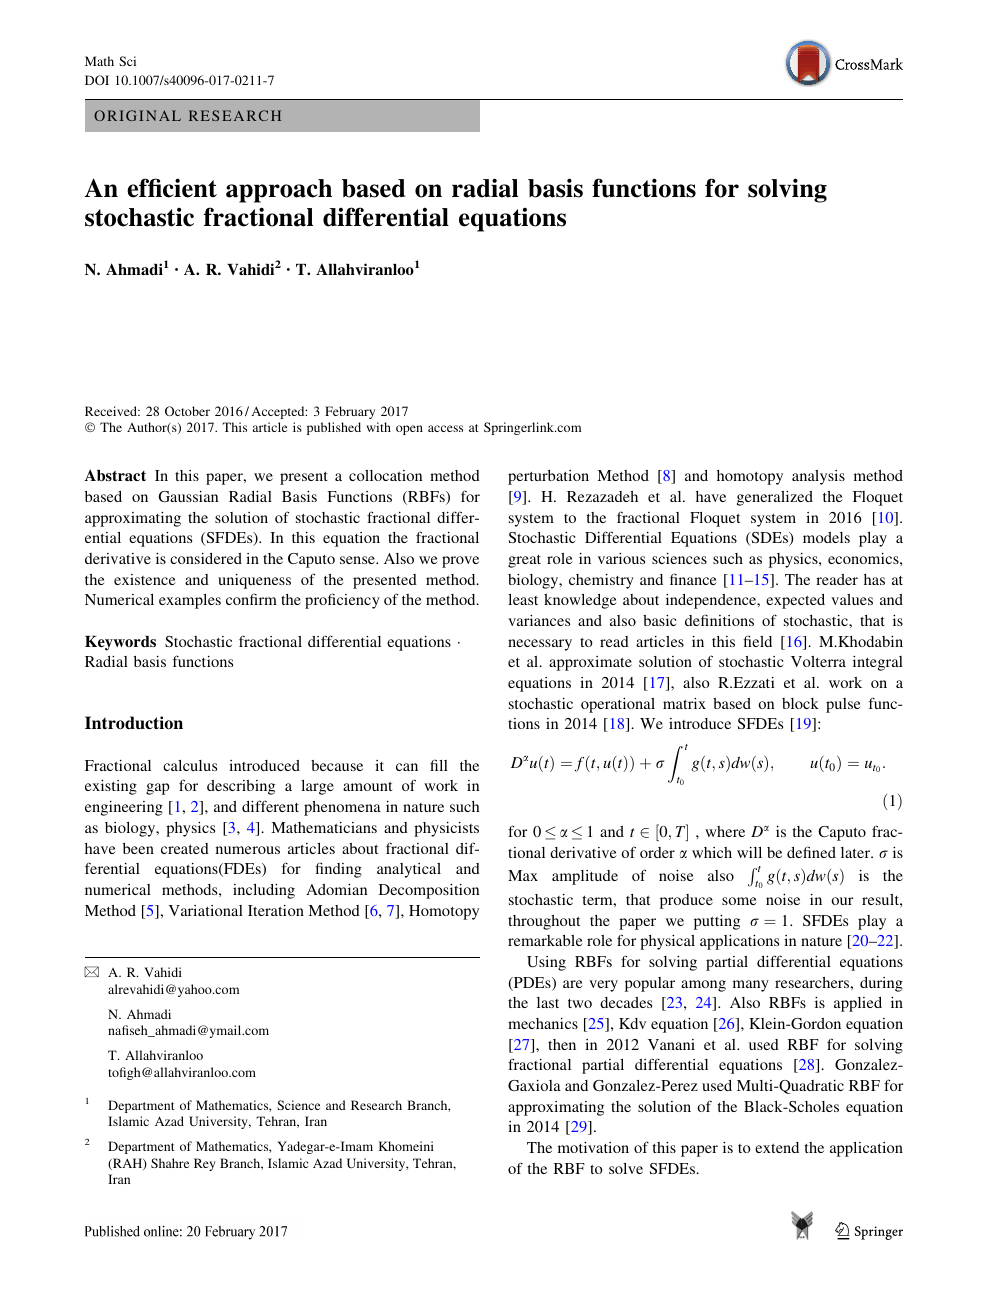 An efficient approach based on radial basis functions for